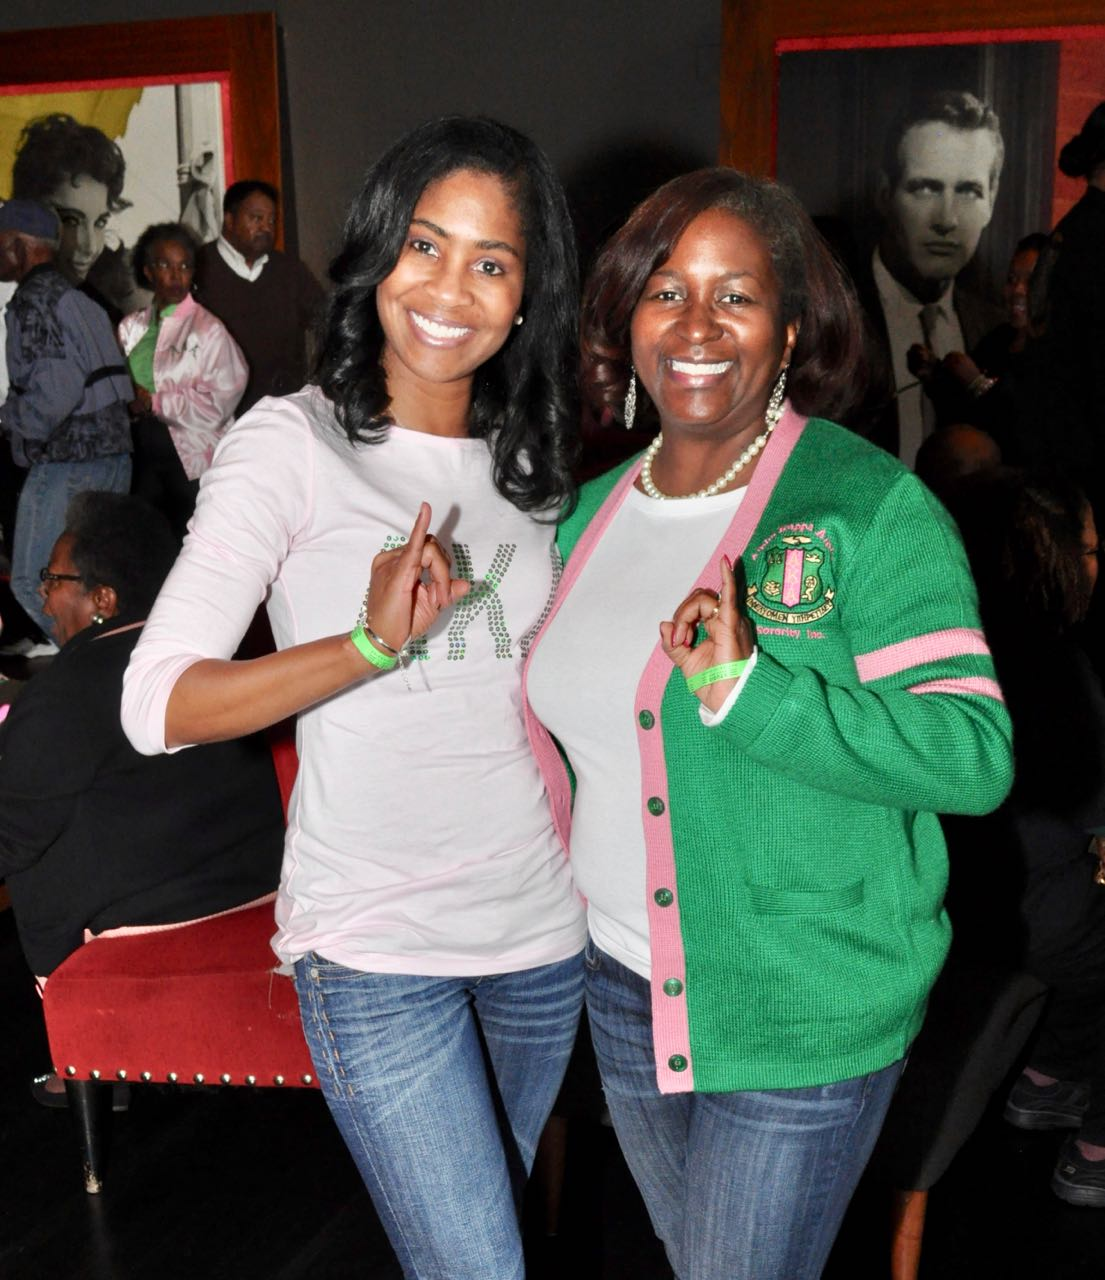 "More than 300 people bought tickets to attend AKA Day at the Movies at Studio Grill in Charlotte, which featured the film ""Hidden Figures."" The event, held to commemorate the 109th year of Alpha Kappa Alpha Sorority, Inc., was hosted by the Alpha Lambda Omega chapter. The event also celebrated the achievements of Katherine Johnson, Dorothy Vaughan and Mary Jackson, three AKA members whose career accomplishments were depicted in the movie. (Photo: Qcitymetro.com)"